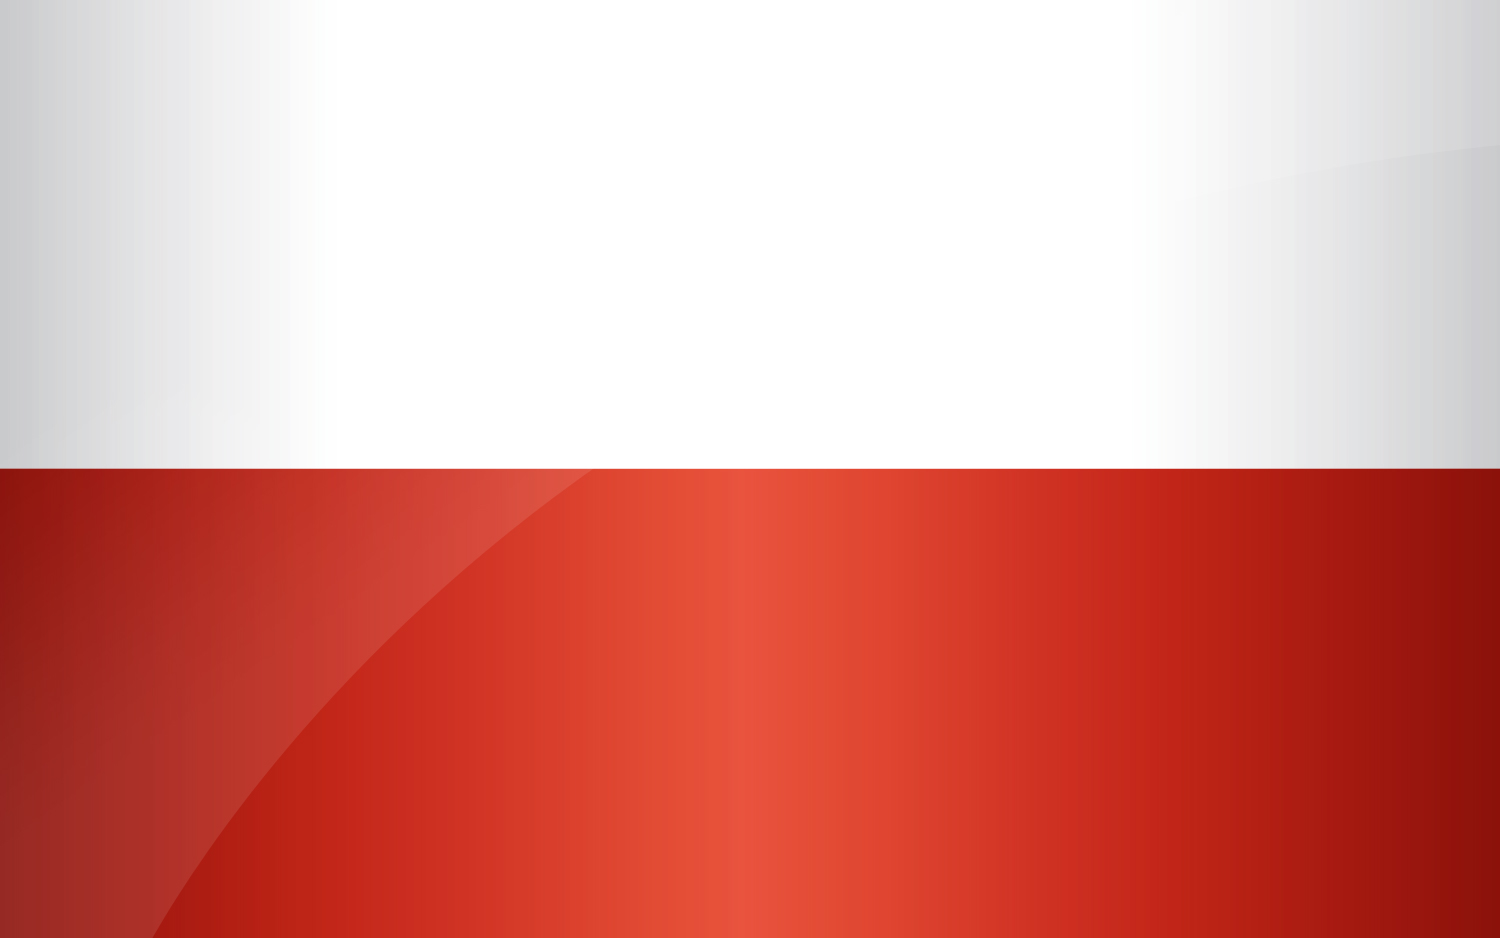 http://www.all-flags-world.com/country-flag/Poland/flag-poland-XL.jpg?555